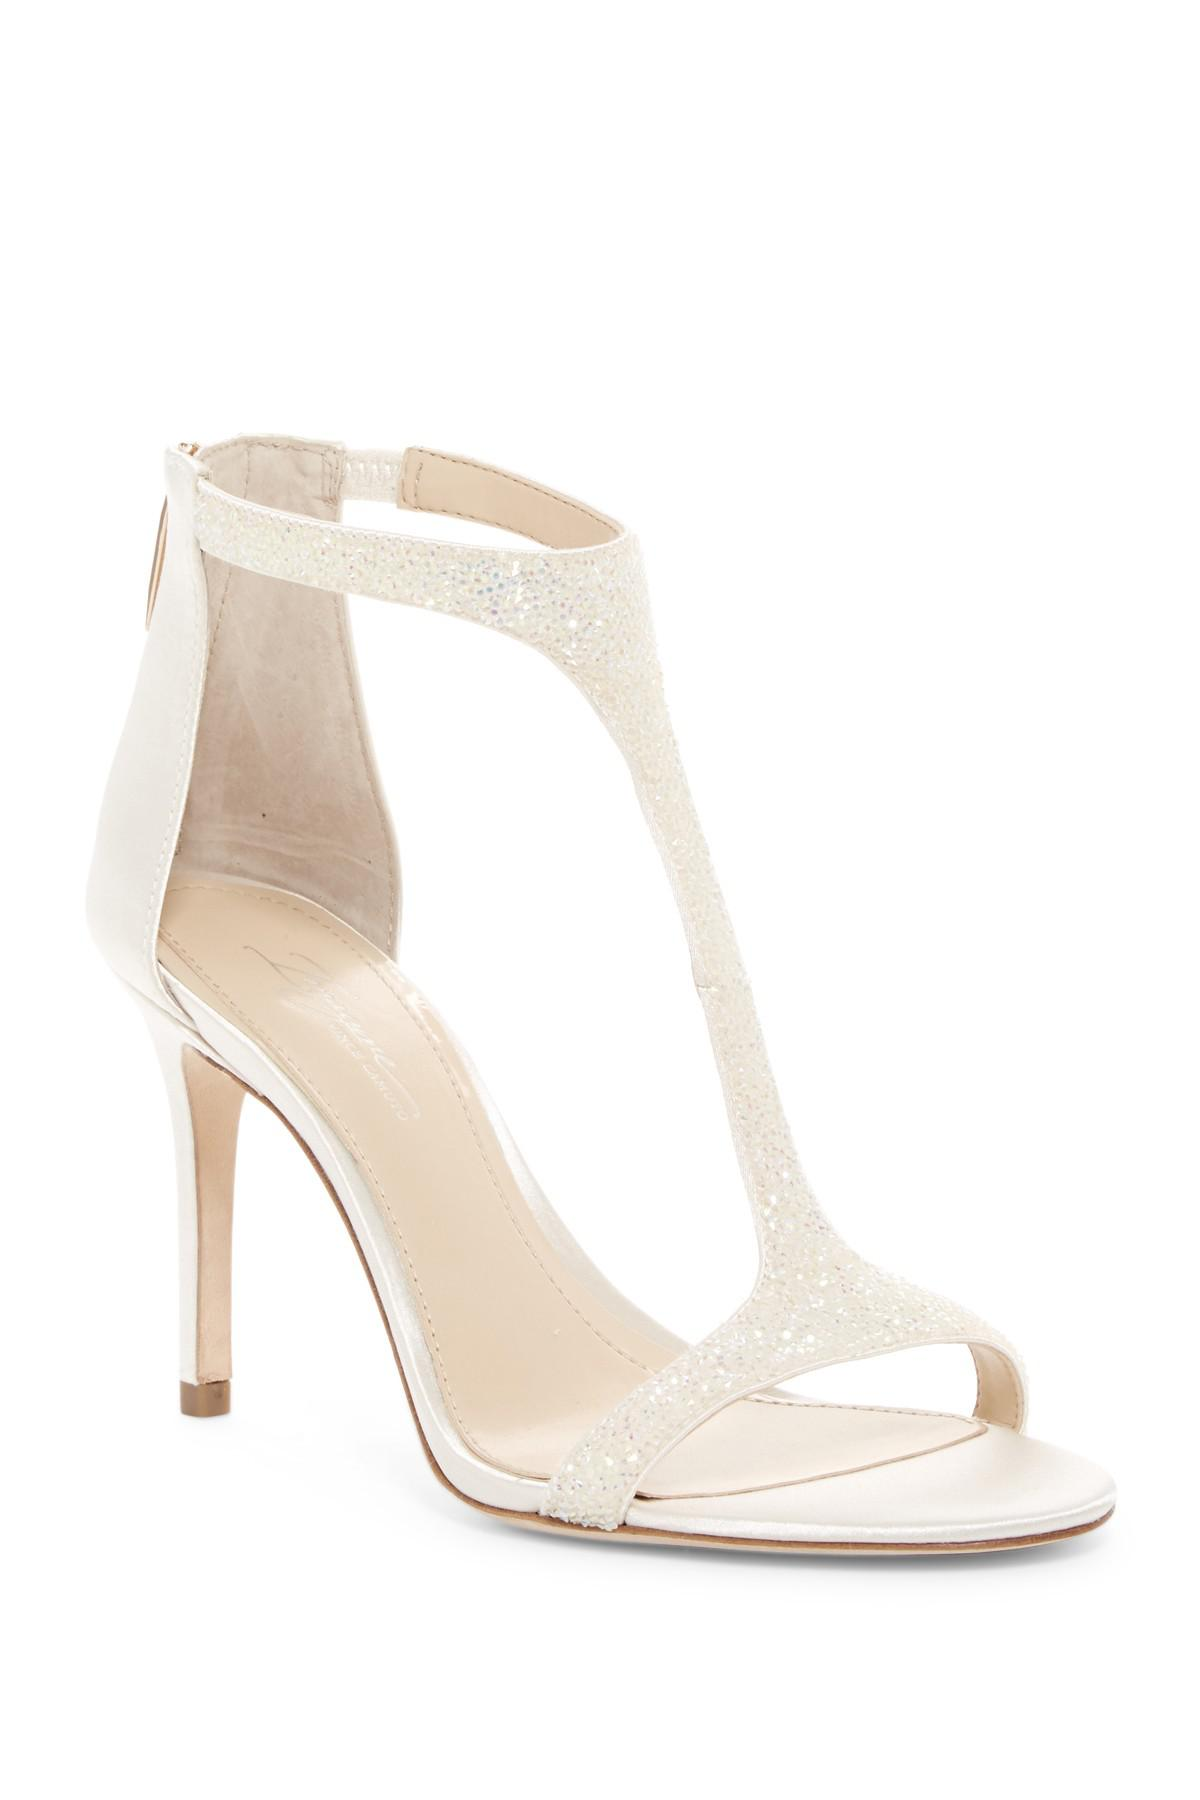 ab5722be1fd Lyst - Imagine Vince Camuto Phoebe Embellished Leather T-strap ...